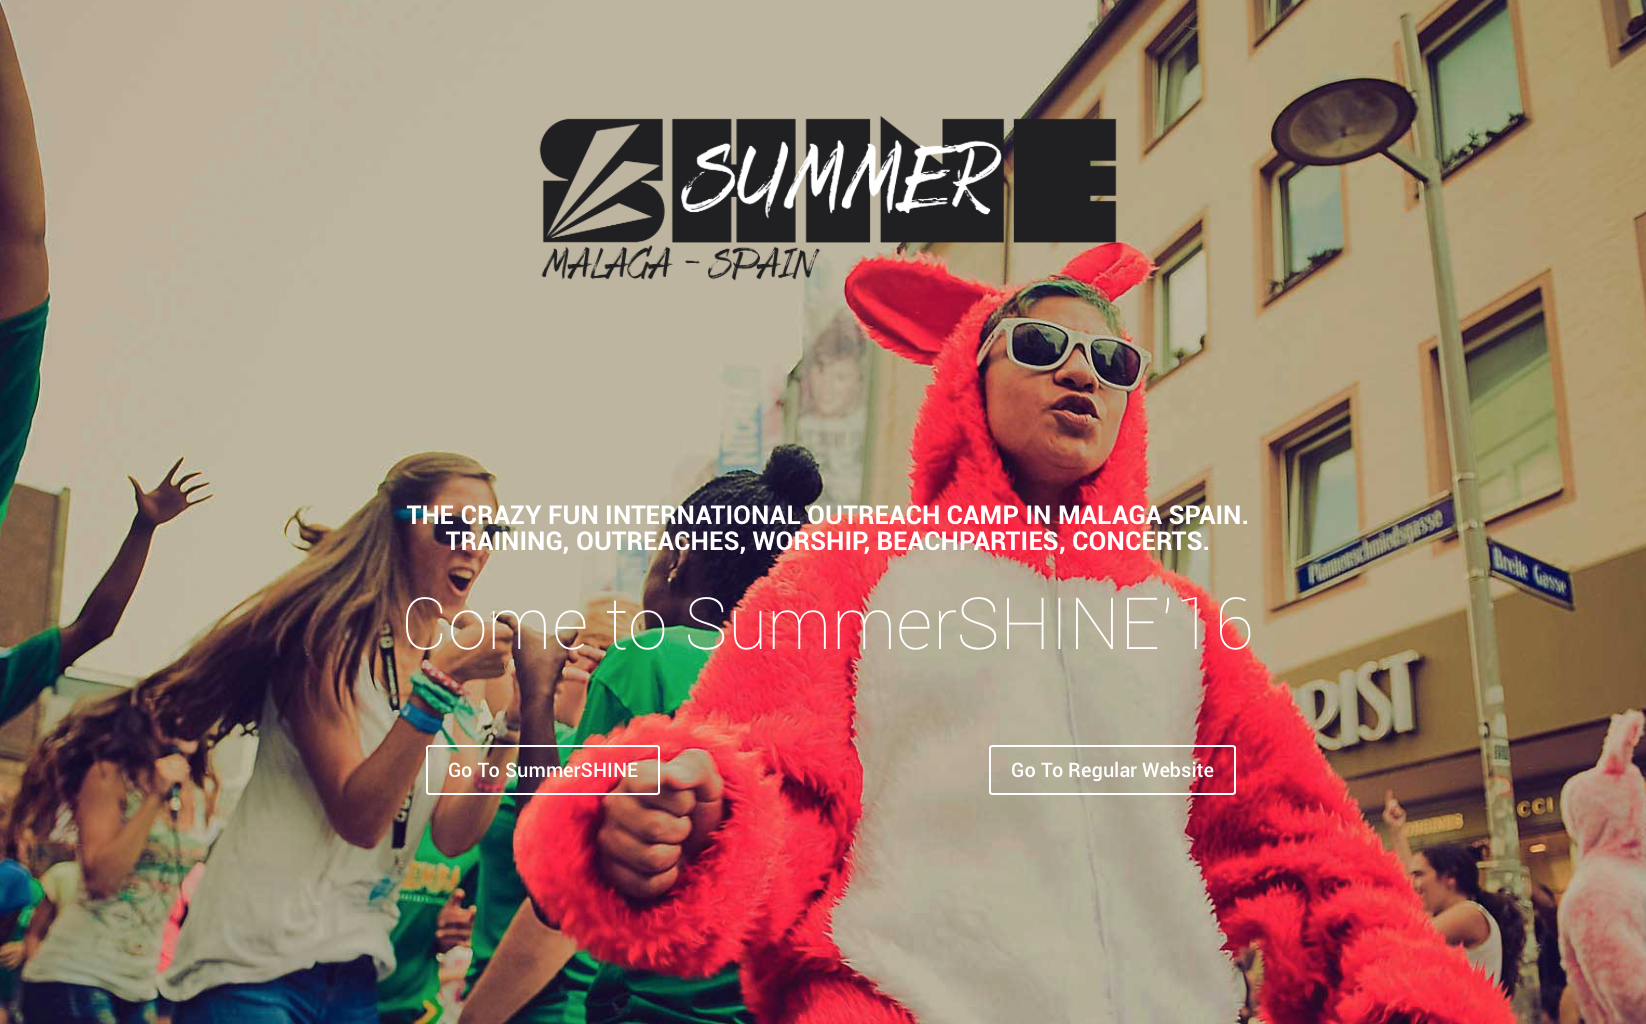 summerSHINE'16 dates are out